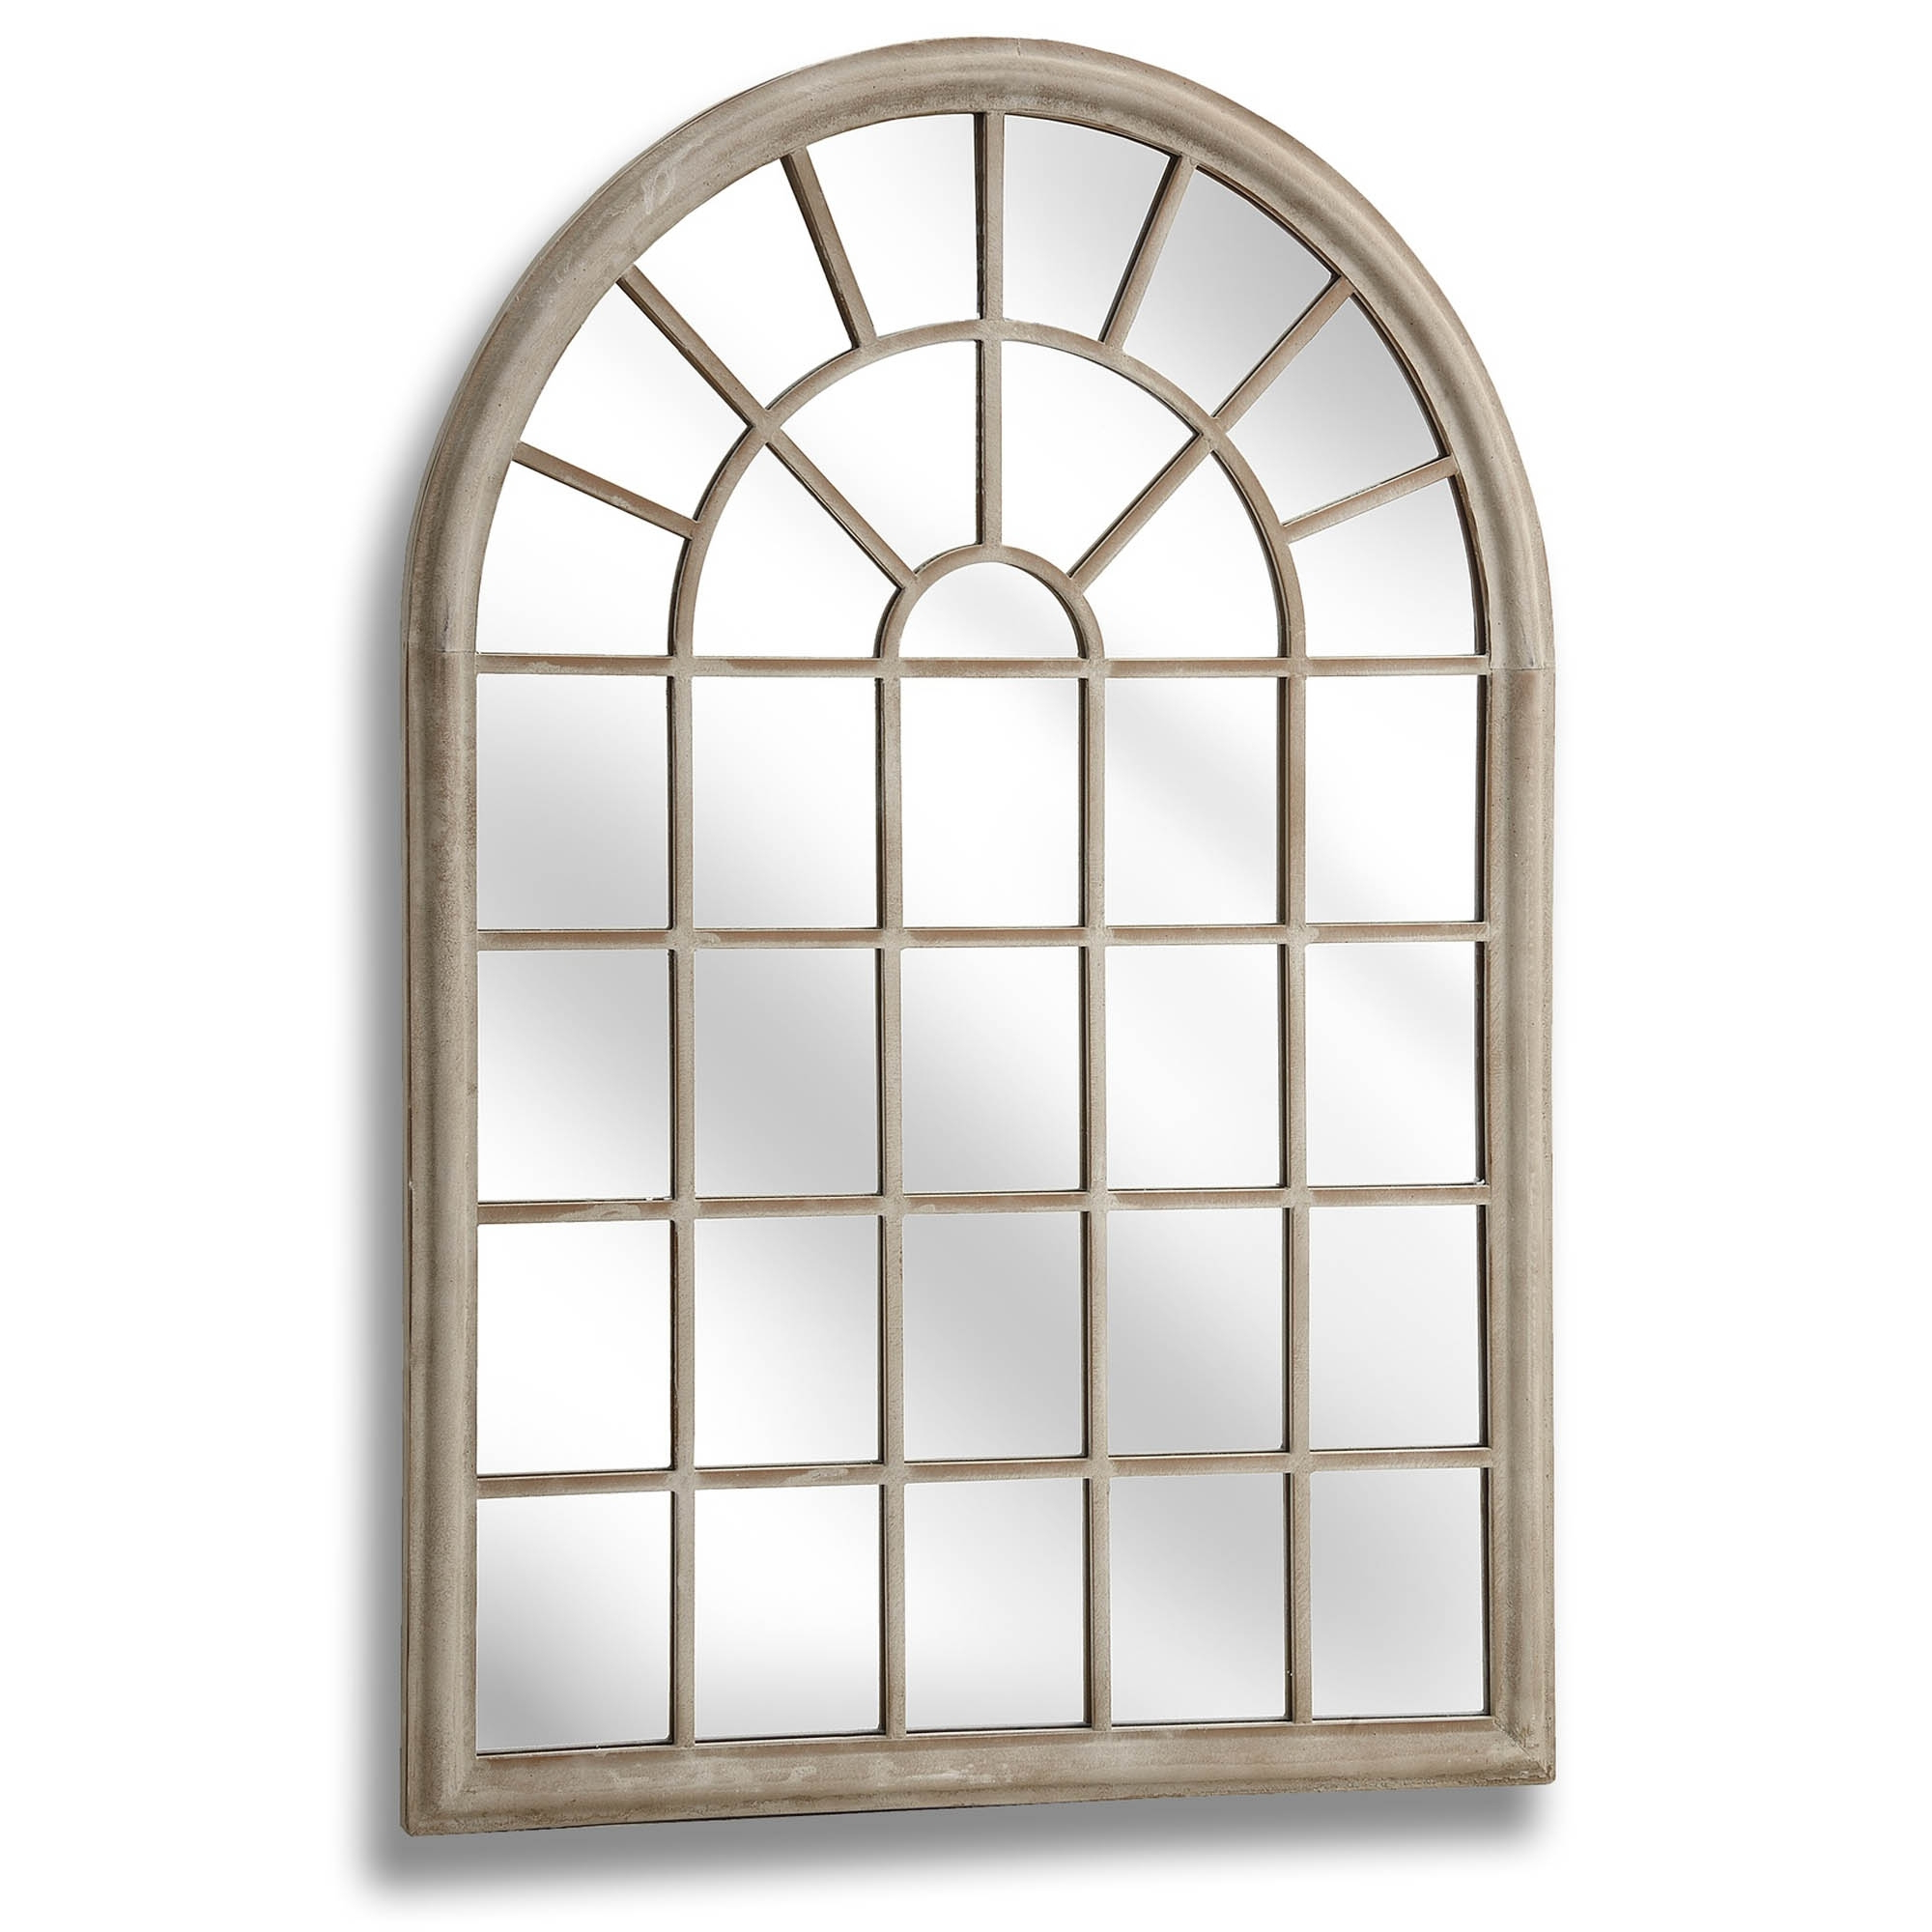 Most Popular Large Rustic Arched Window Wall Mirror With Regard To Metal Arch Window Wall Mirrors (Gallery 12 of 20)